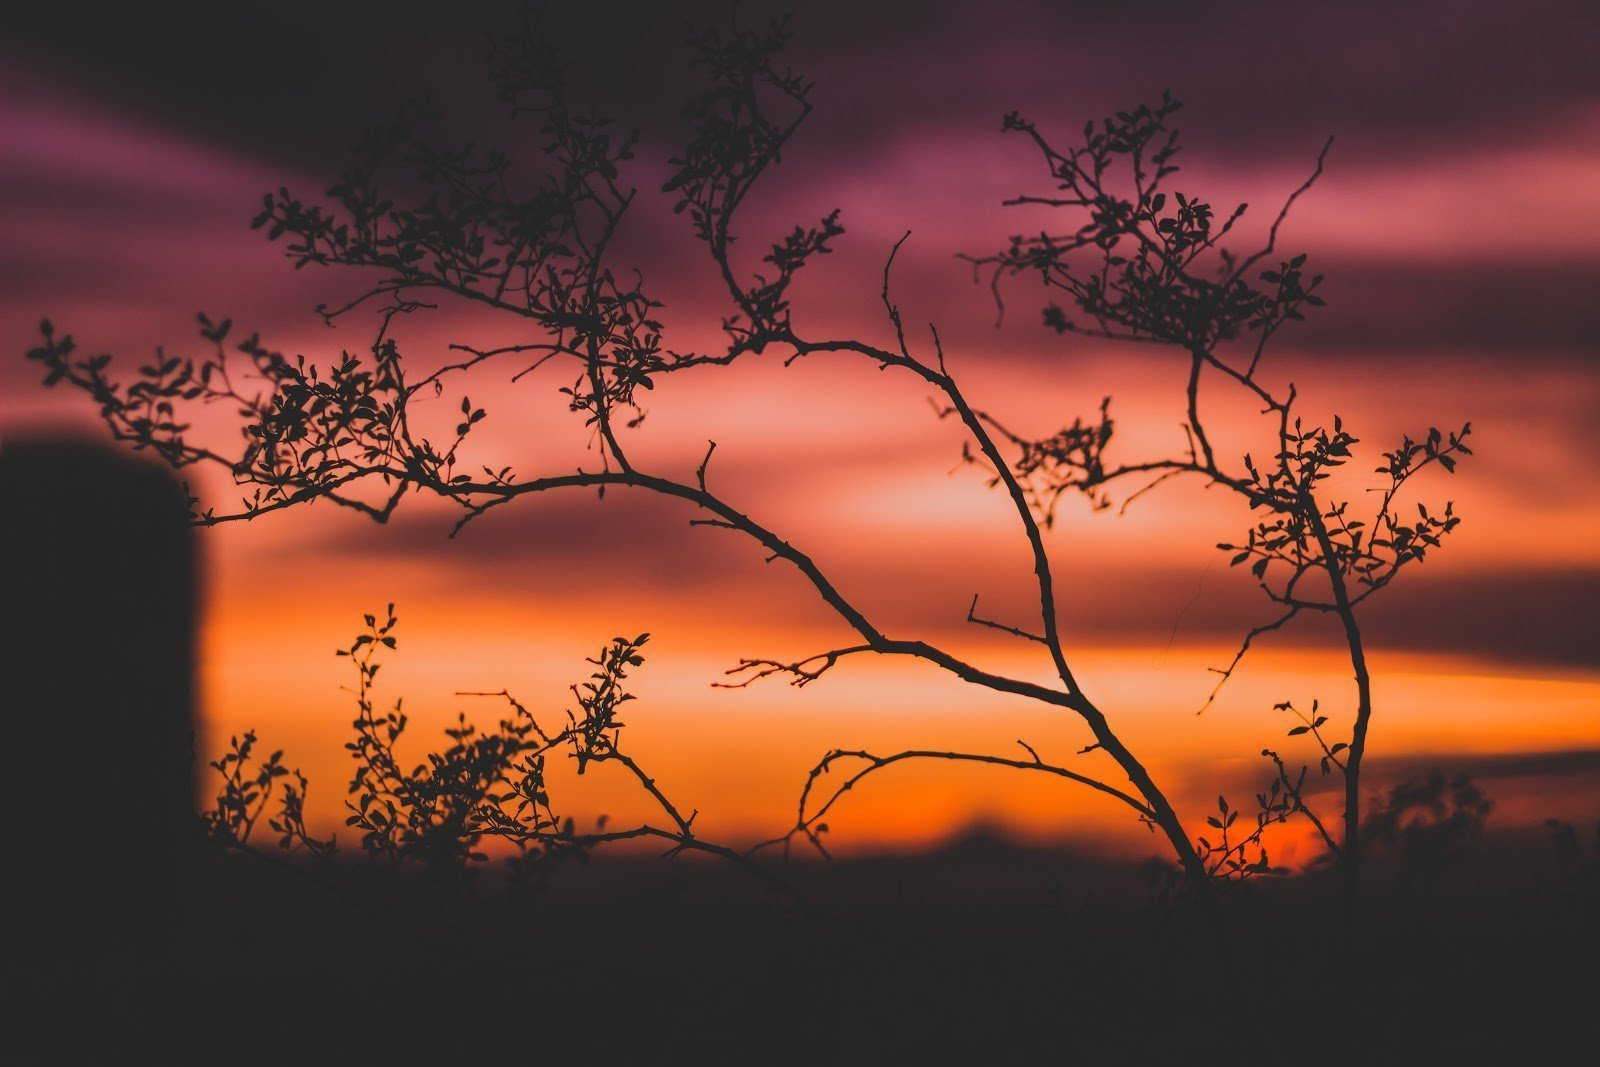 Silhouette of a tree during sunset by Alex J. Reyes